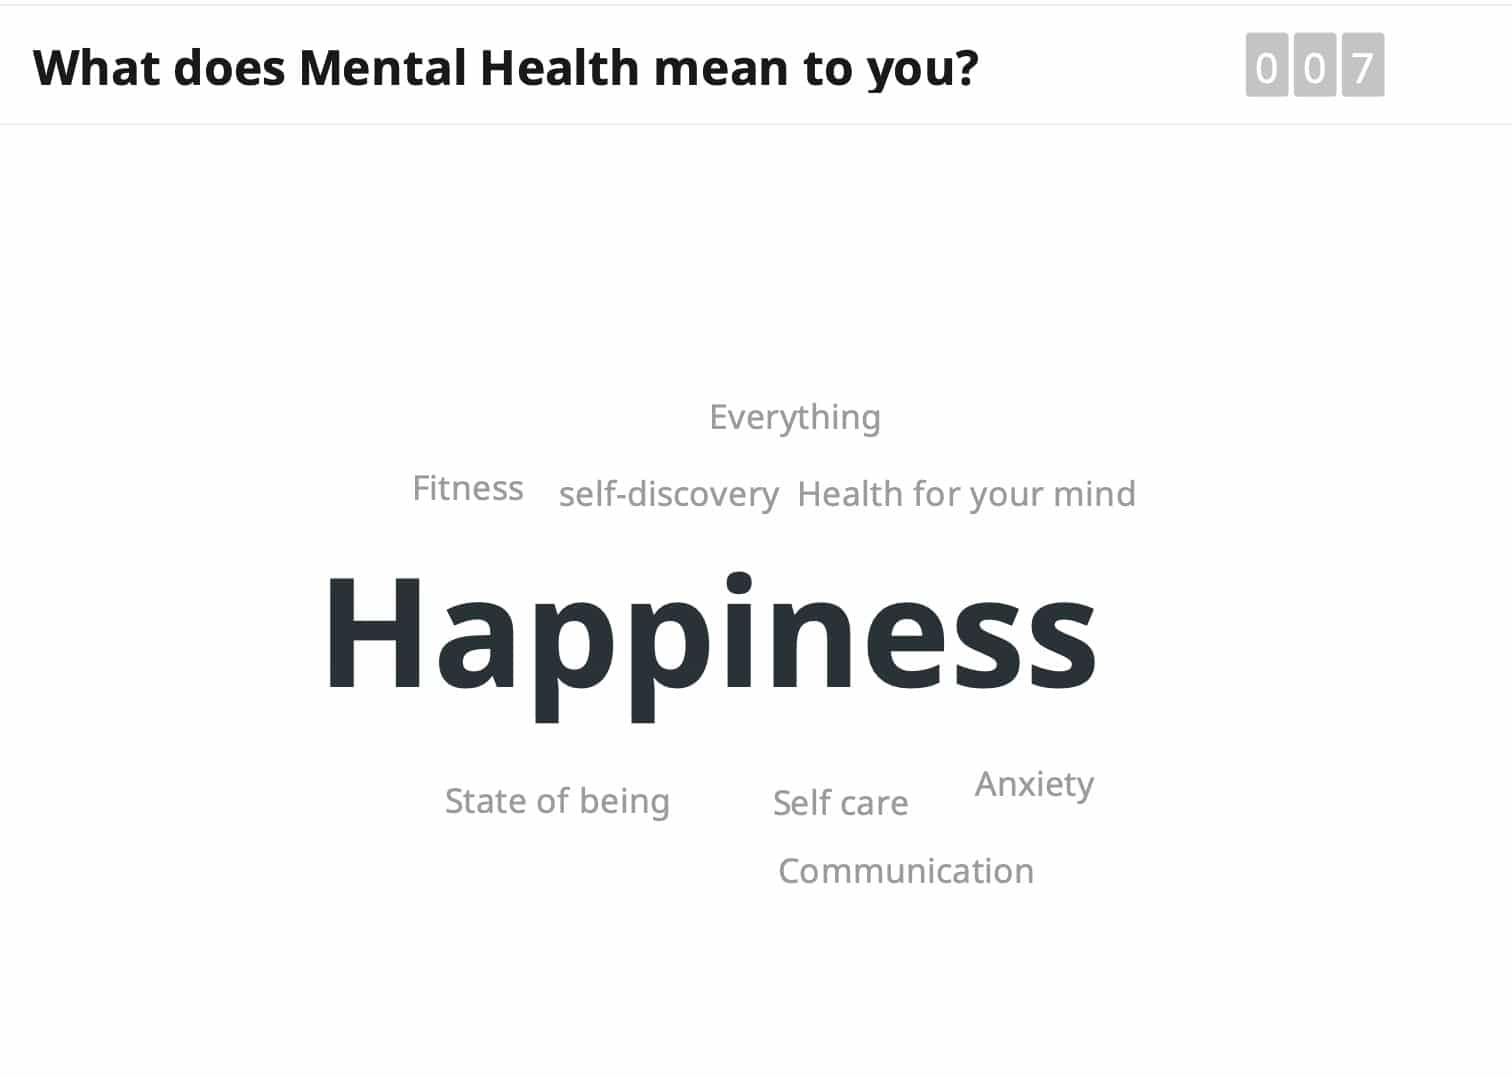 Happiness. Fitness. Communication. State of being. Everything. Anxiety. Health for your mind. Self care. Self-discovery.